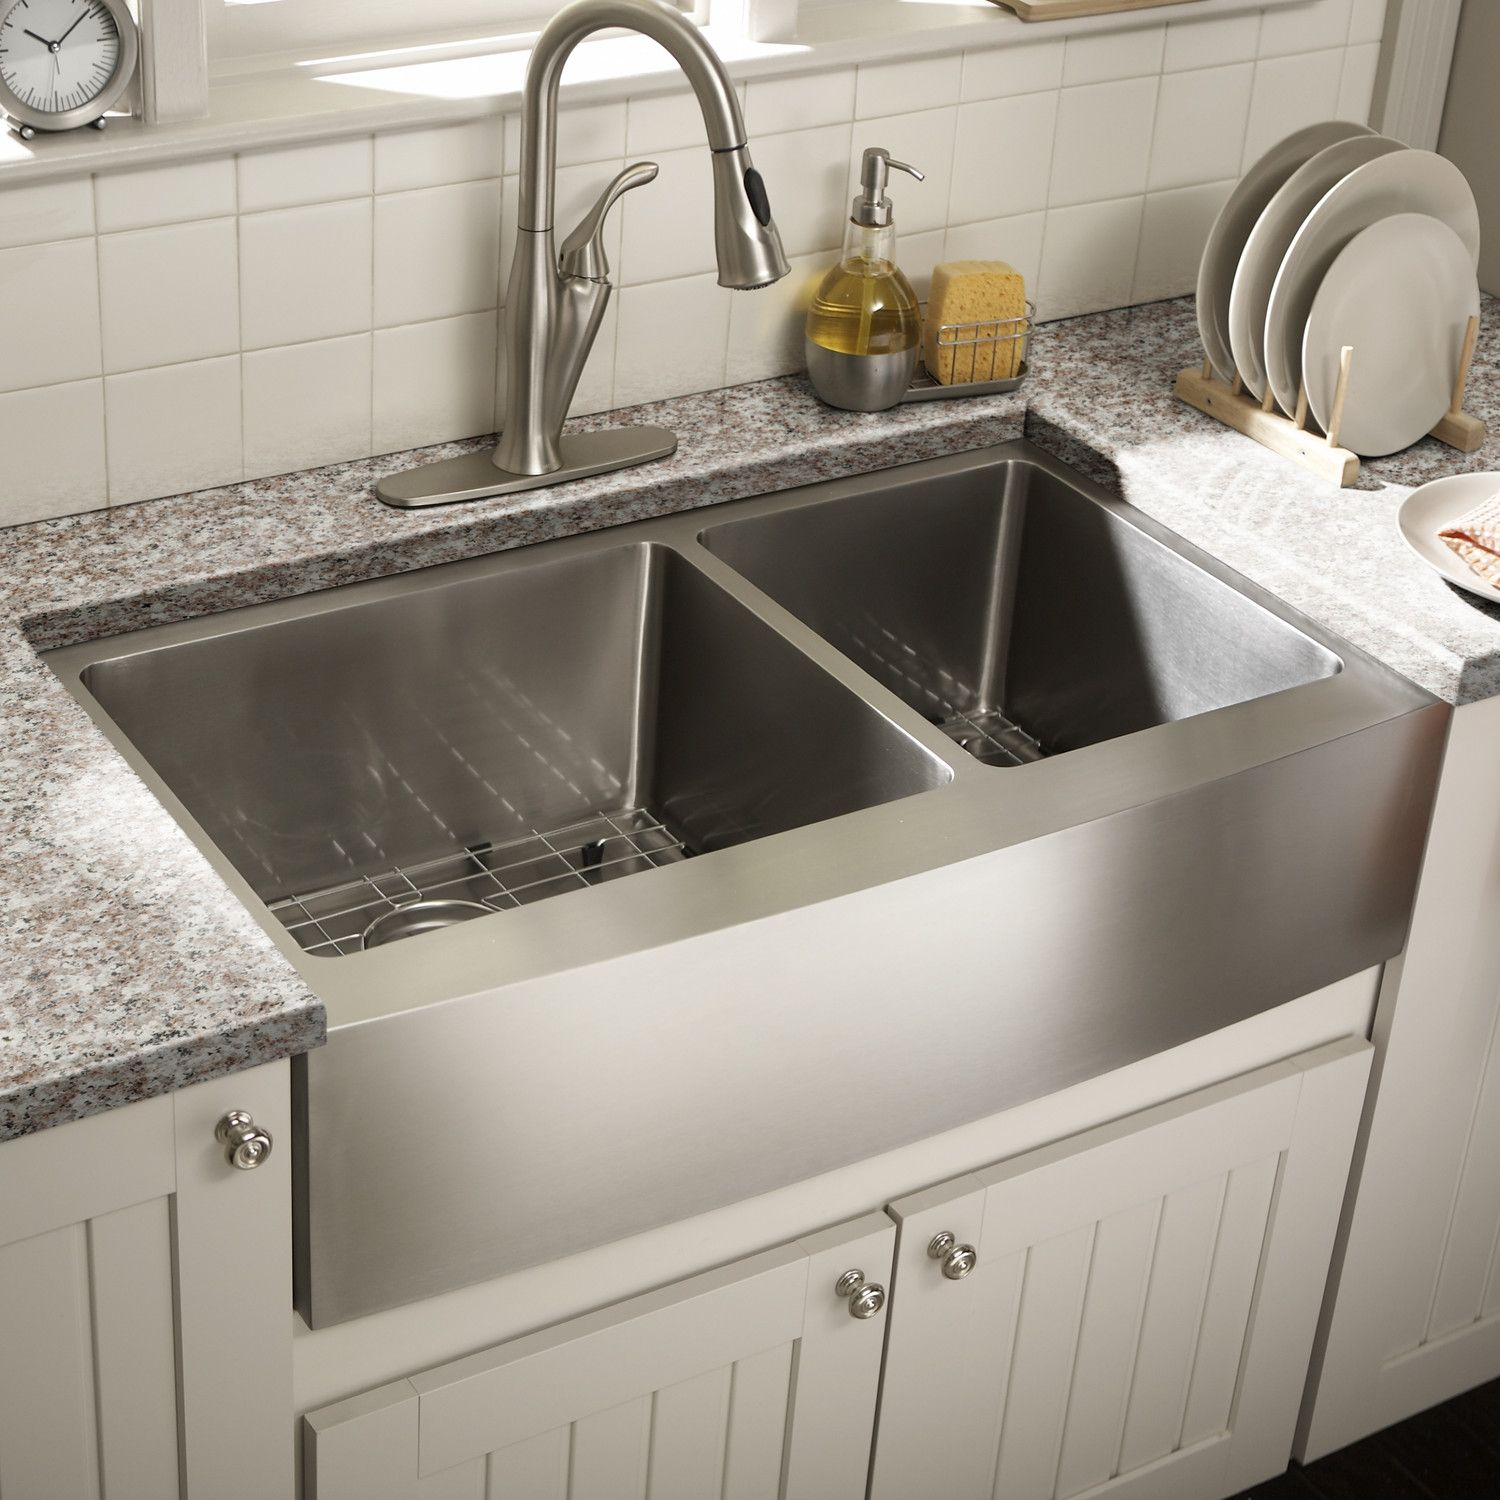 Want double stainless farmhouse sink Schon Farmhouse 36 x